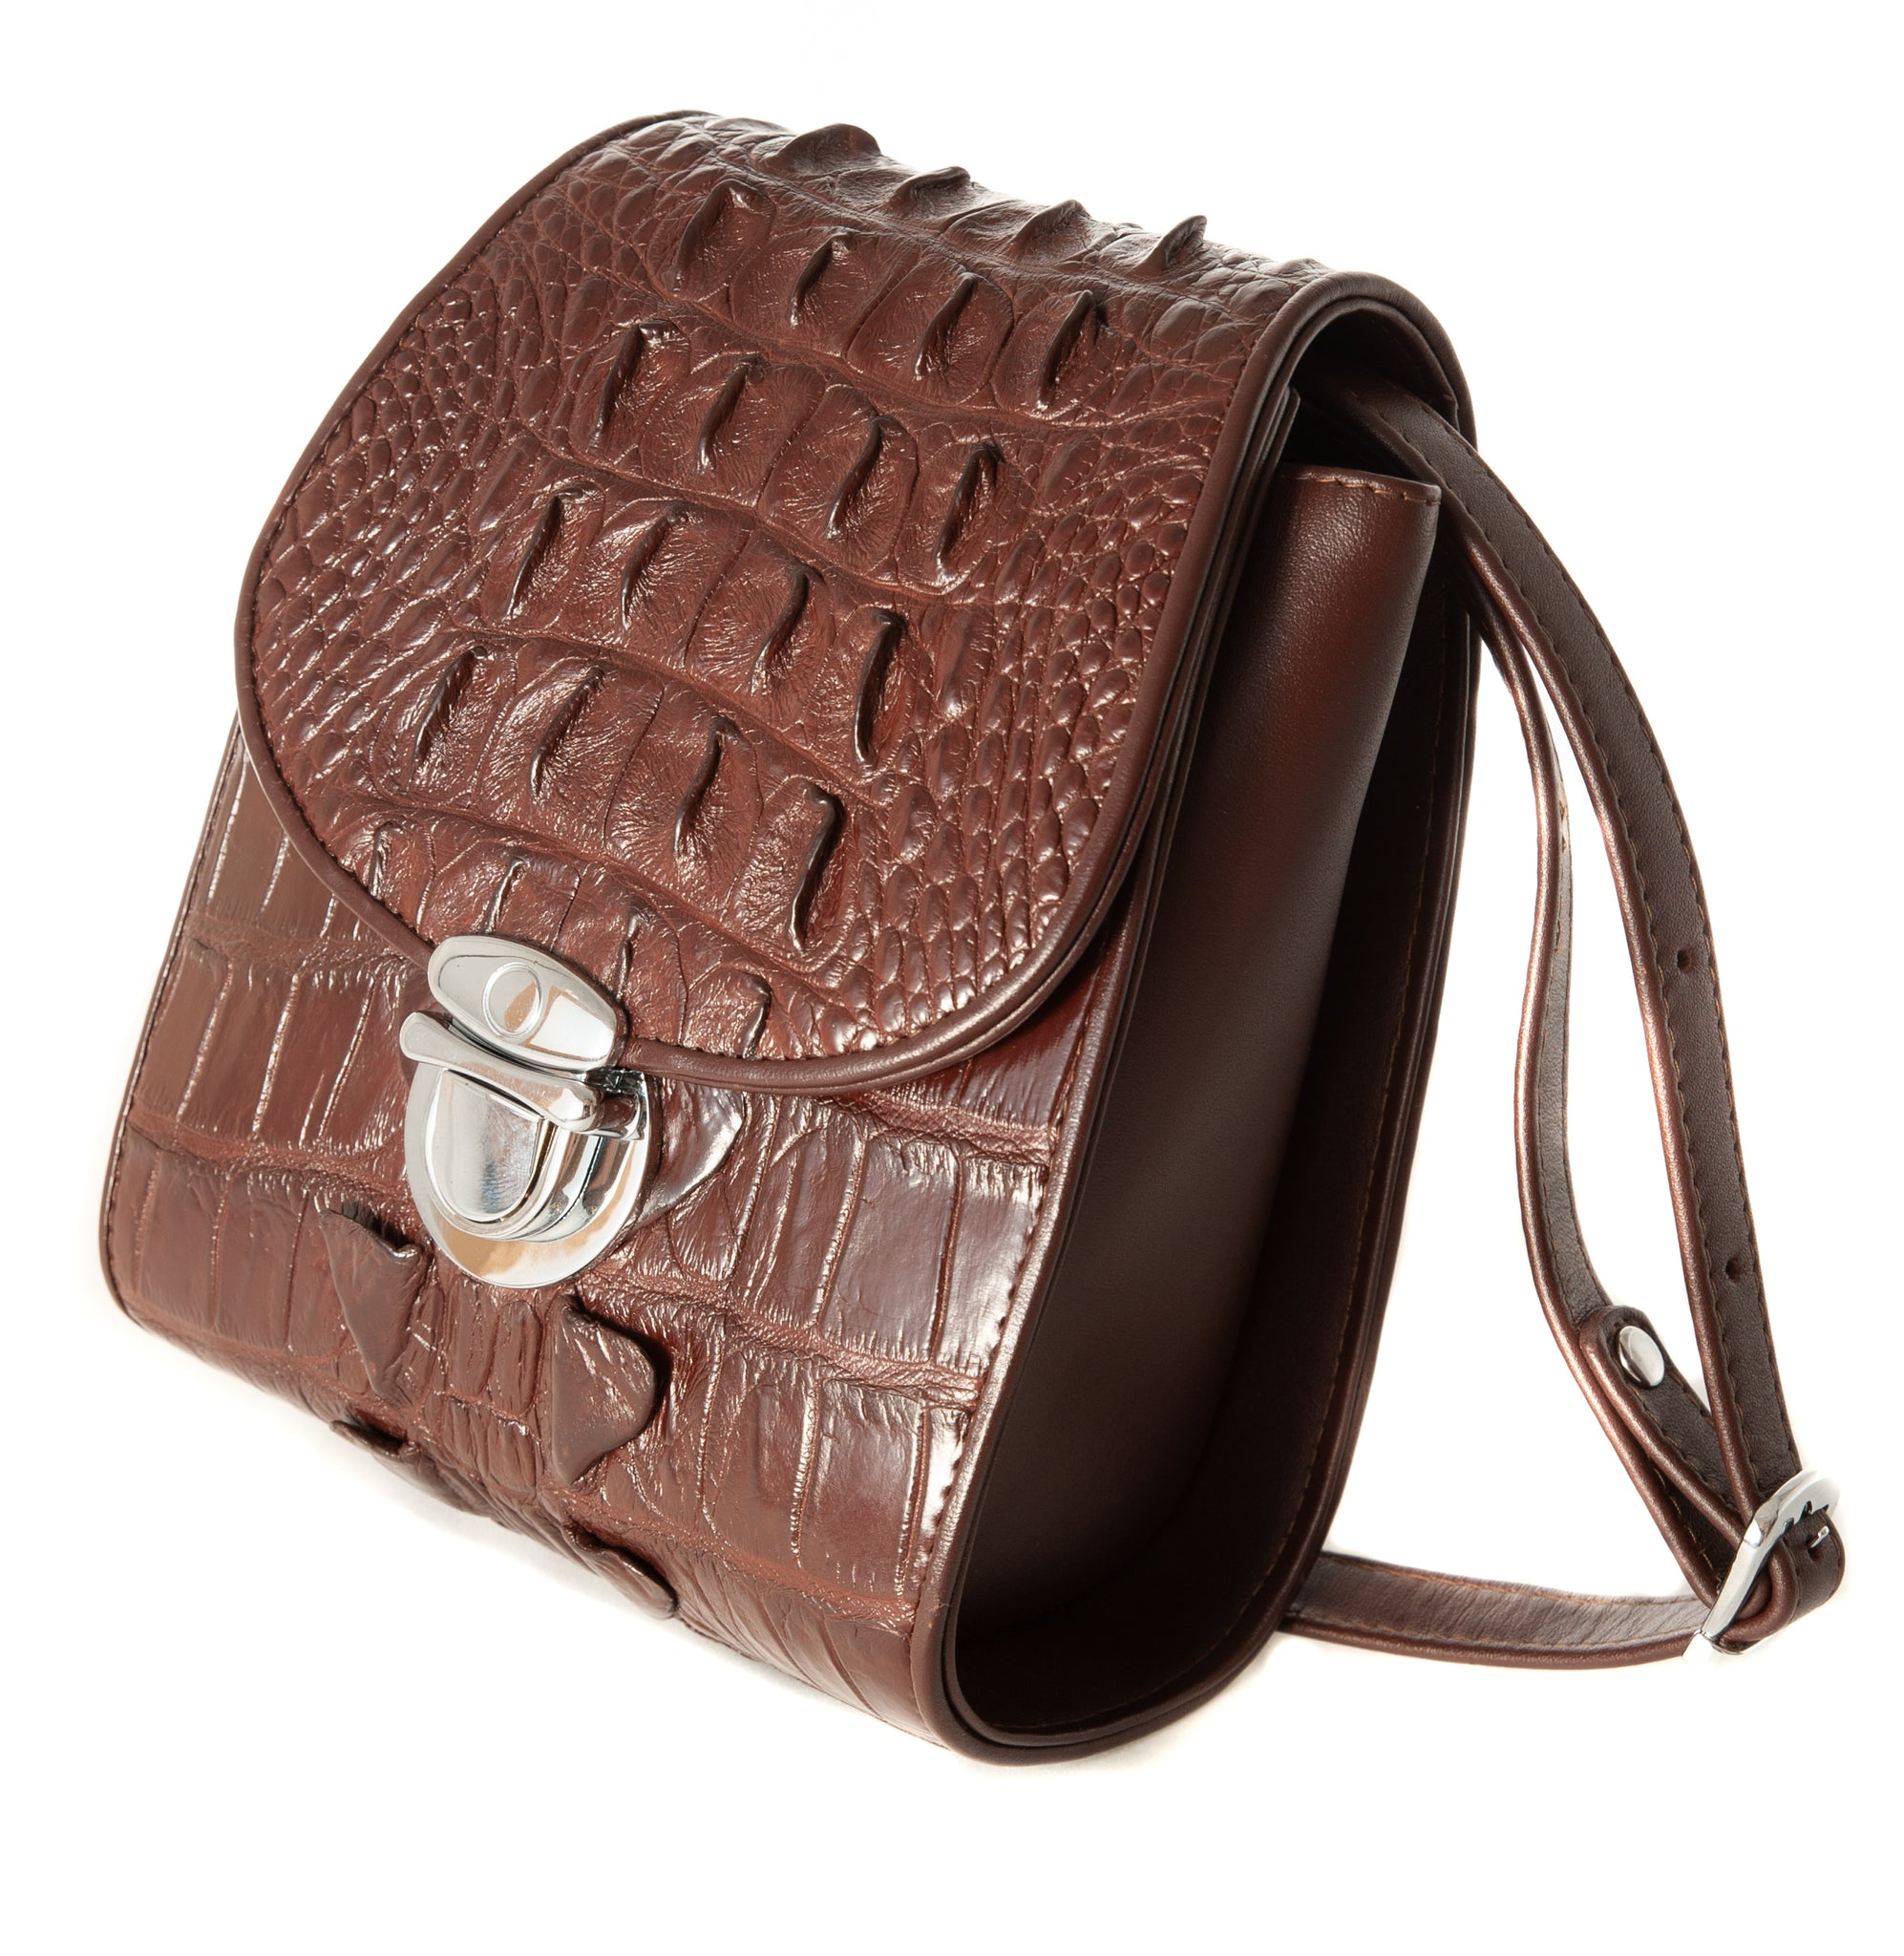 Bella Crocodile Skin Handbag